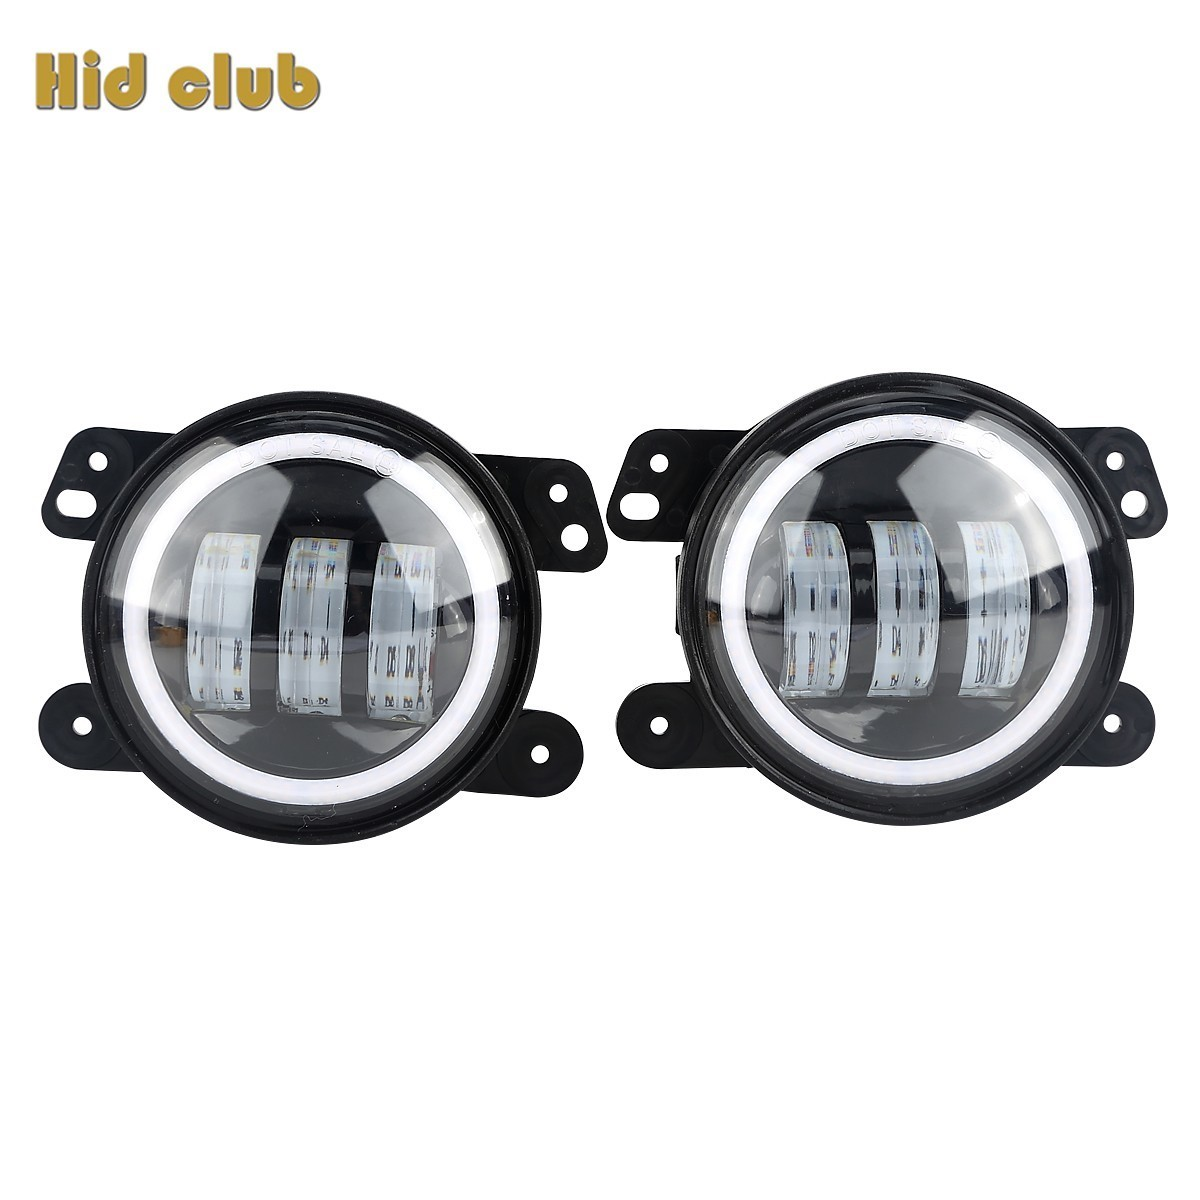 HIDCULB 4Inch 30W Round Fog Light Headlight Projector Lens With Halo DRL Lamp For Offroad Jeep Wrangler JK For Drop Shopping<br>